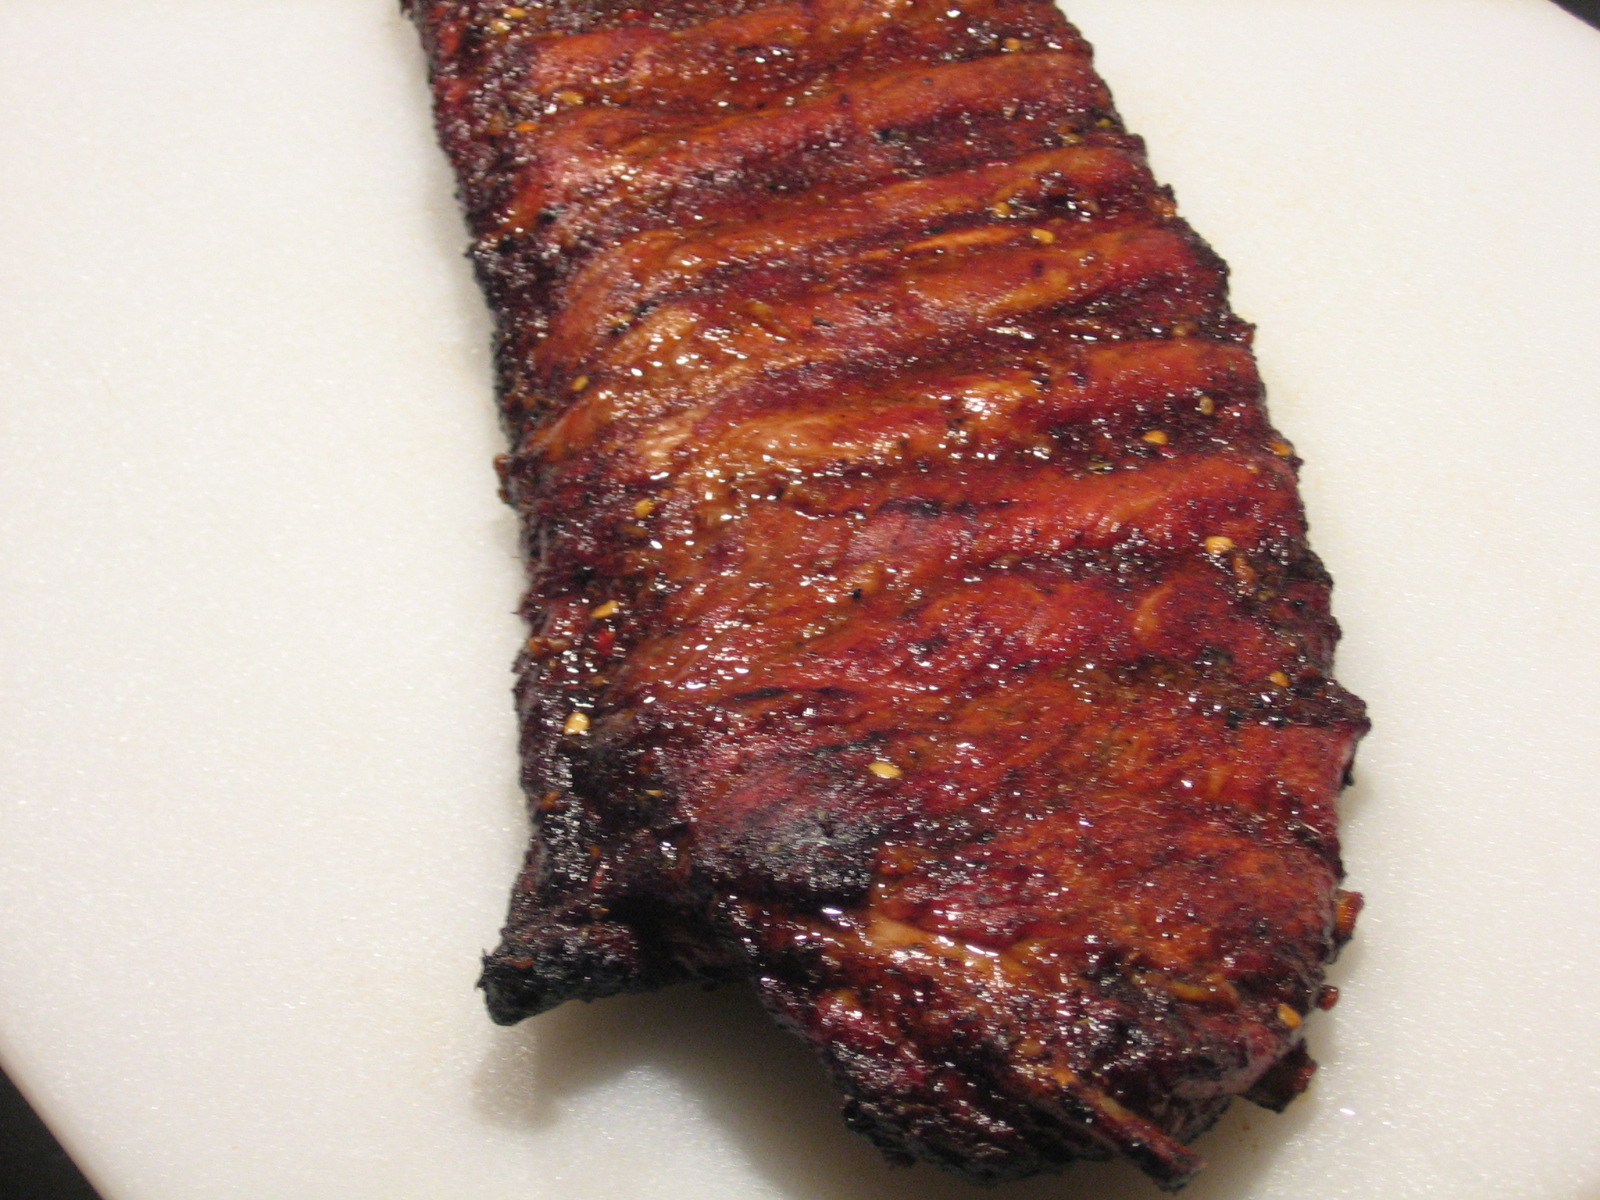 Vanilla Bean Ribs With Dry Rub And Sweet And Sour Mop